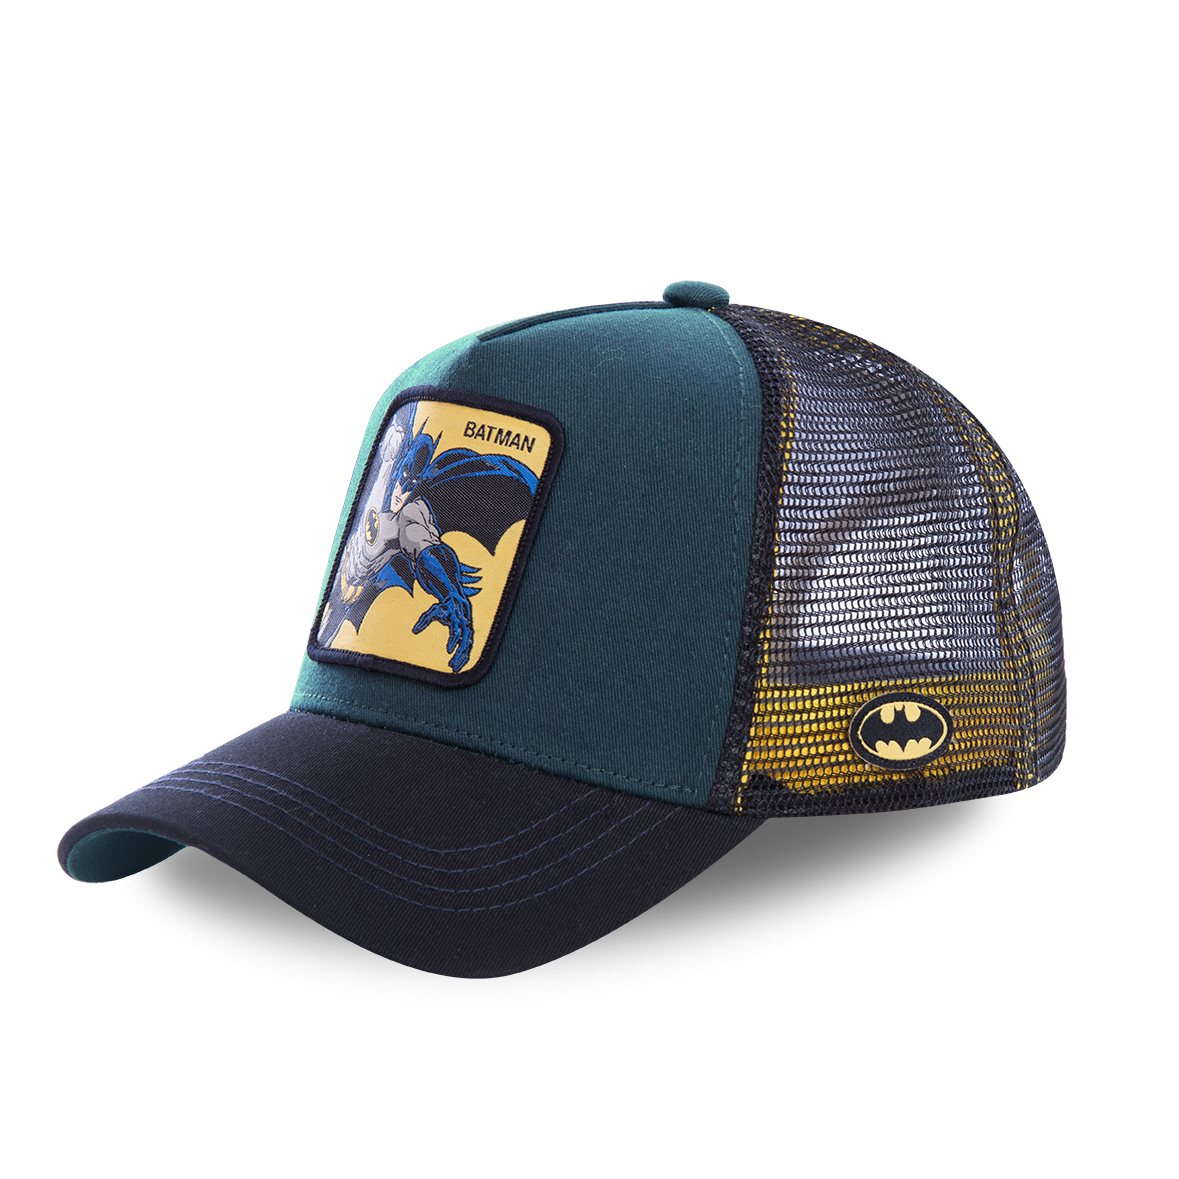 Casquette capslab dc comics batman bleu marine (photo)